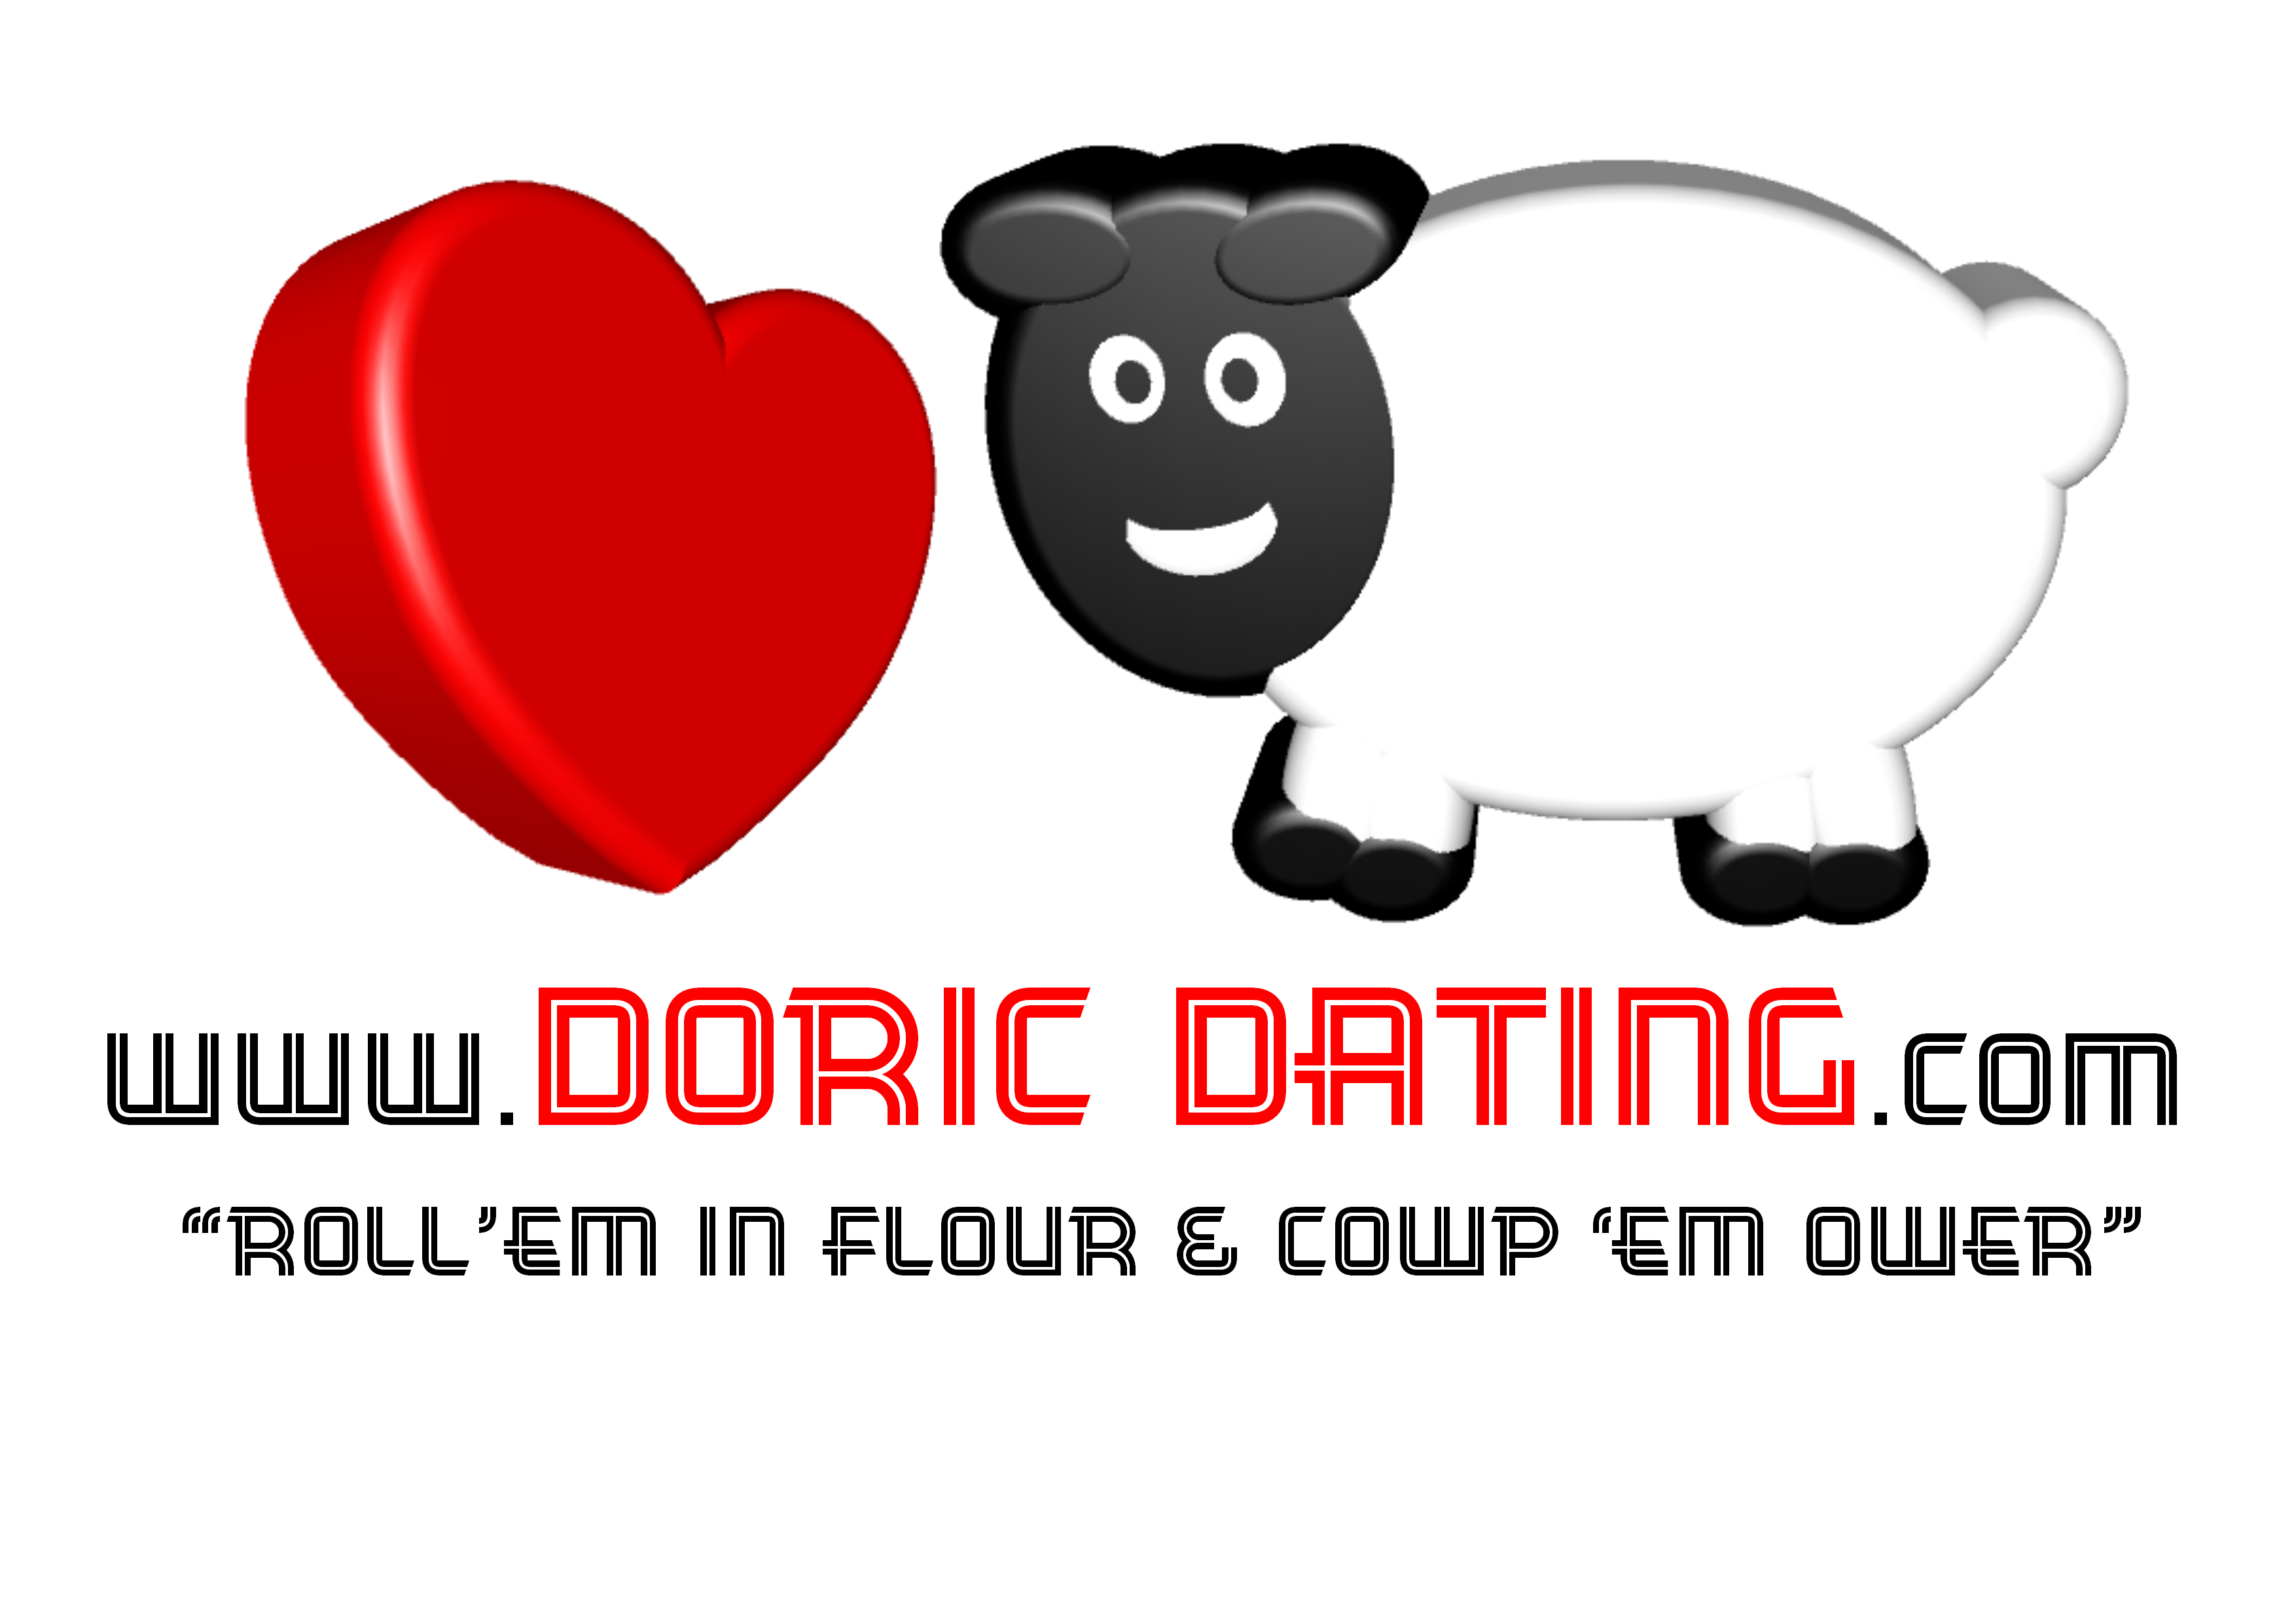 How Many Practices Are Banned By The Oft Oft Doric Dating Logo